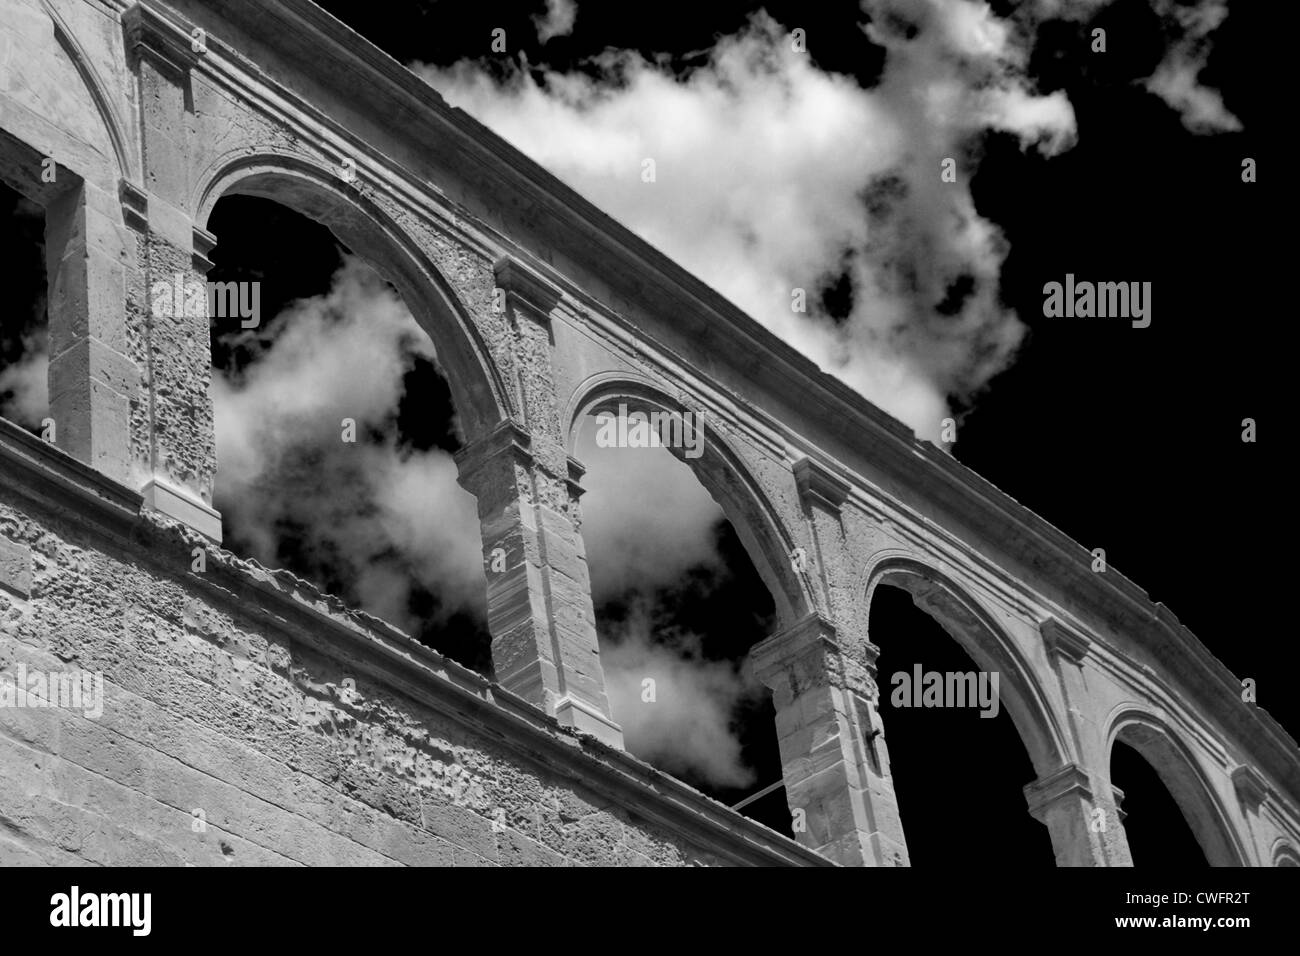 Roman amphitheater in Lecce, Italy - Stock Image